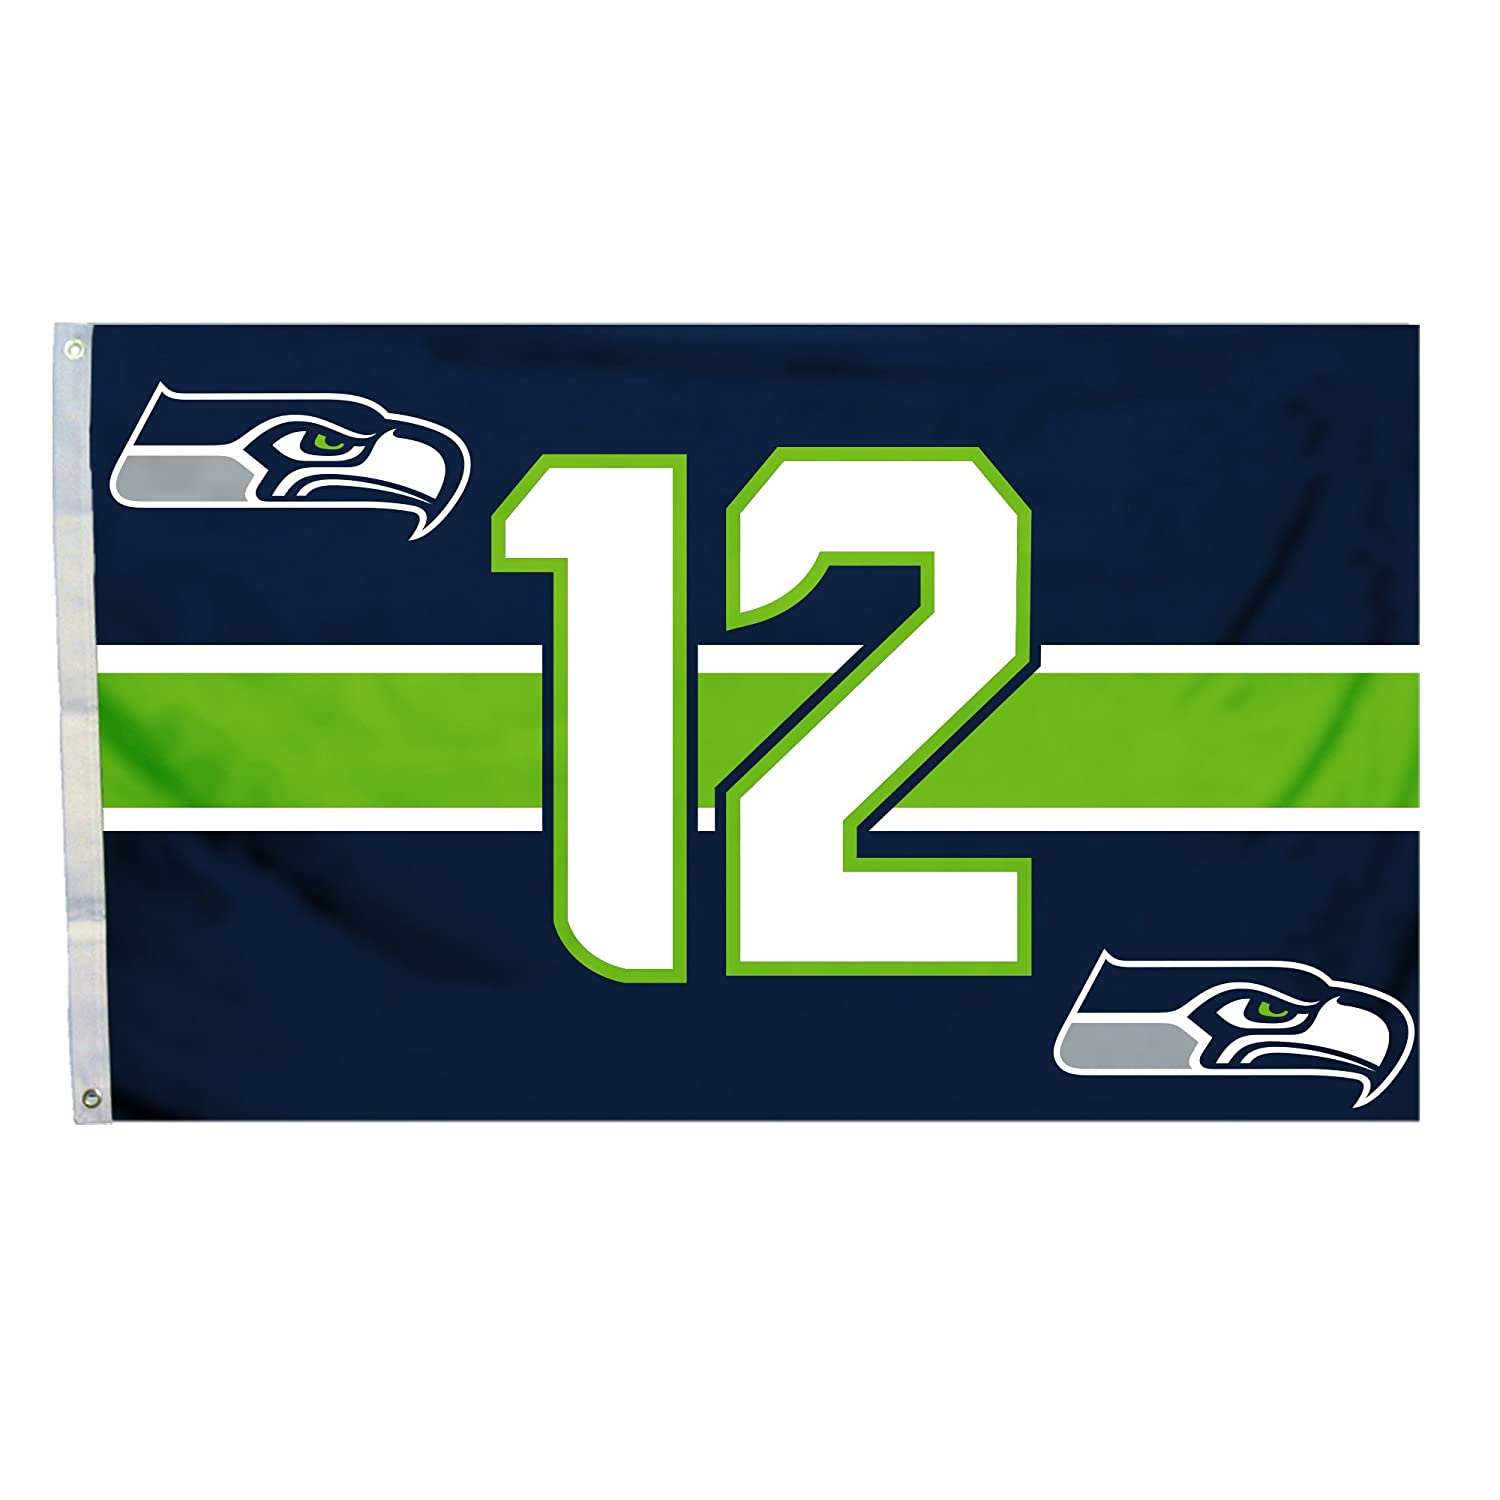 fathead pdp shop seahawks for seattle wall decal classic furniture nfl logo